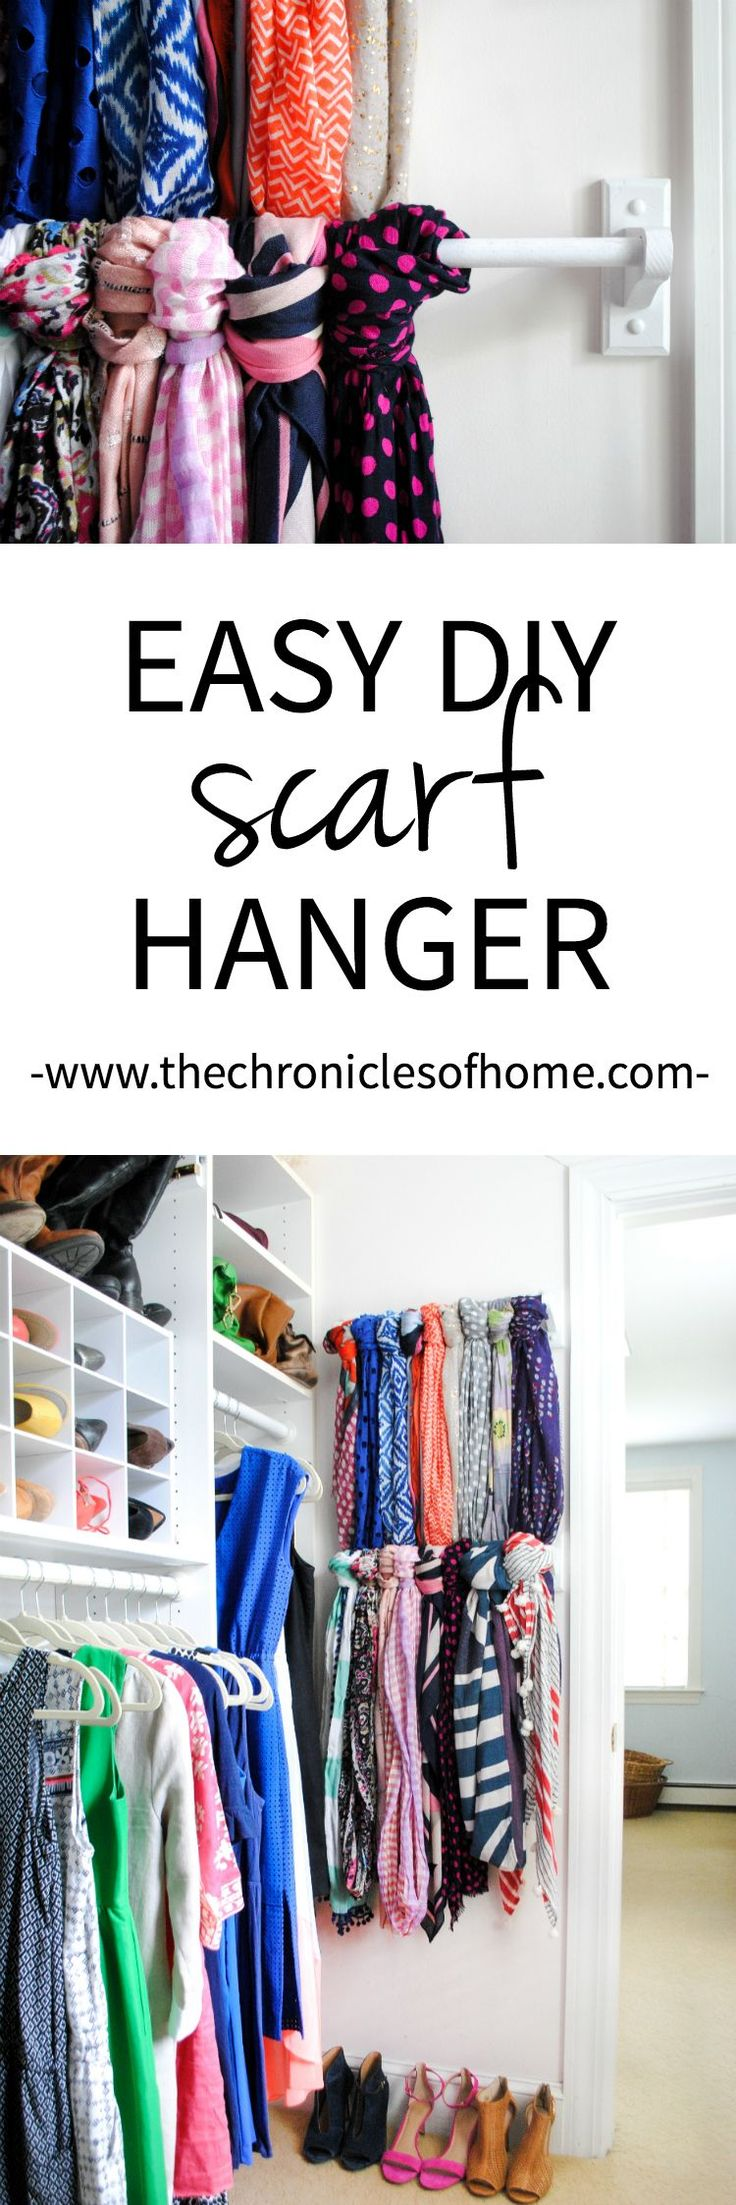 Best 25+ Scarf hanger ideas on Pinterest | Curtains ring top, Organizing  belts and Fun shower curtains